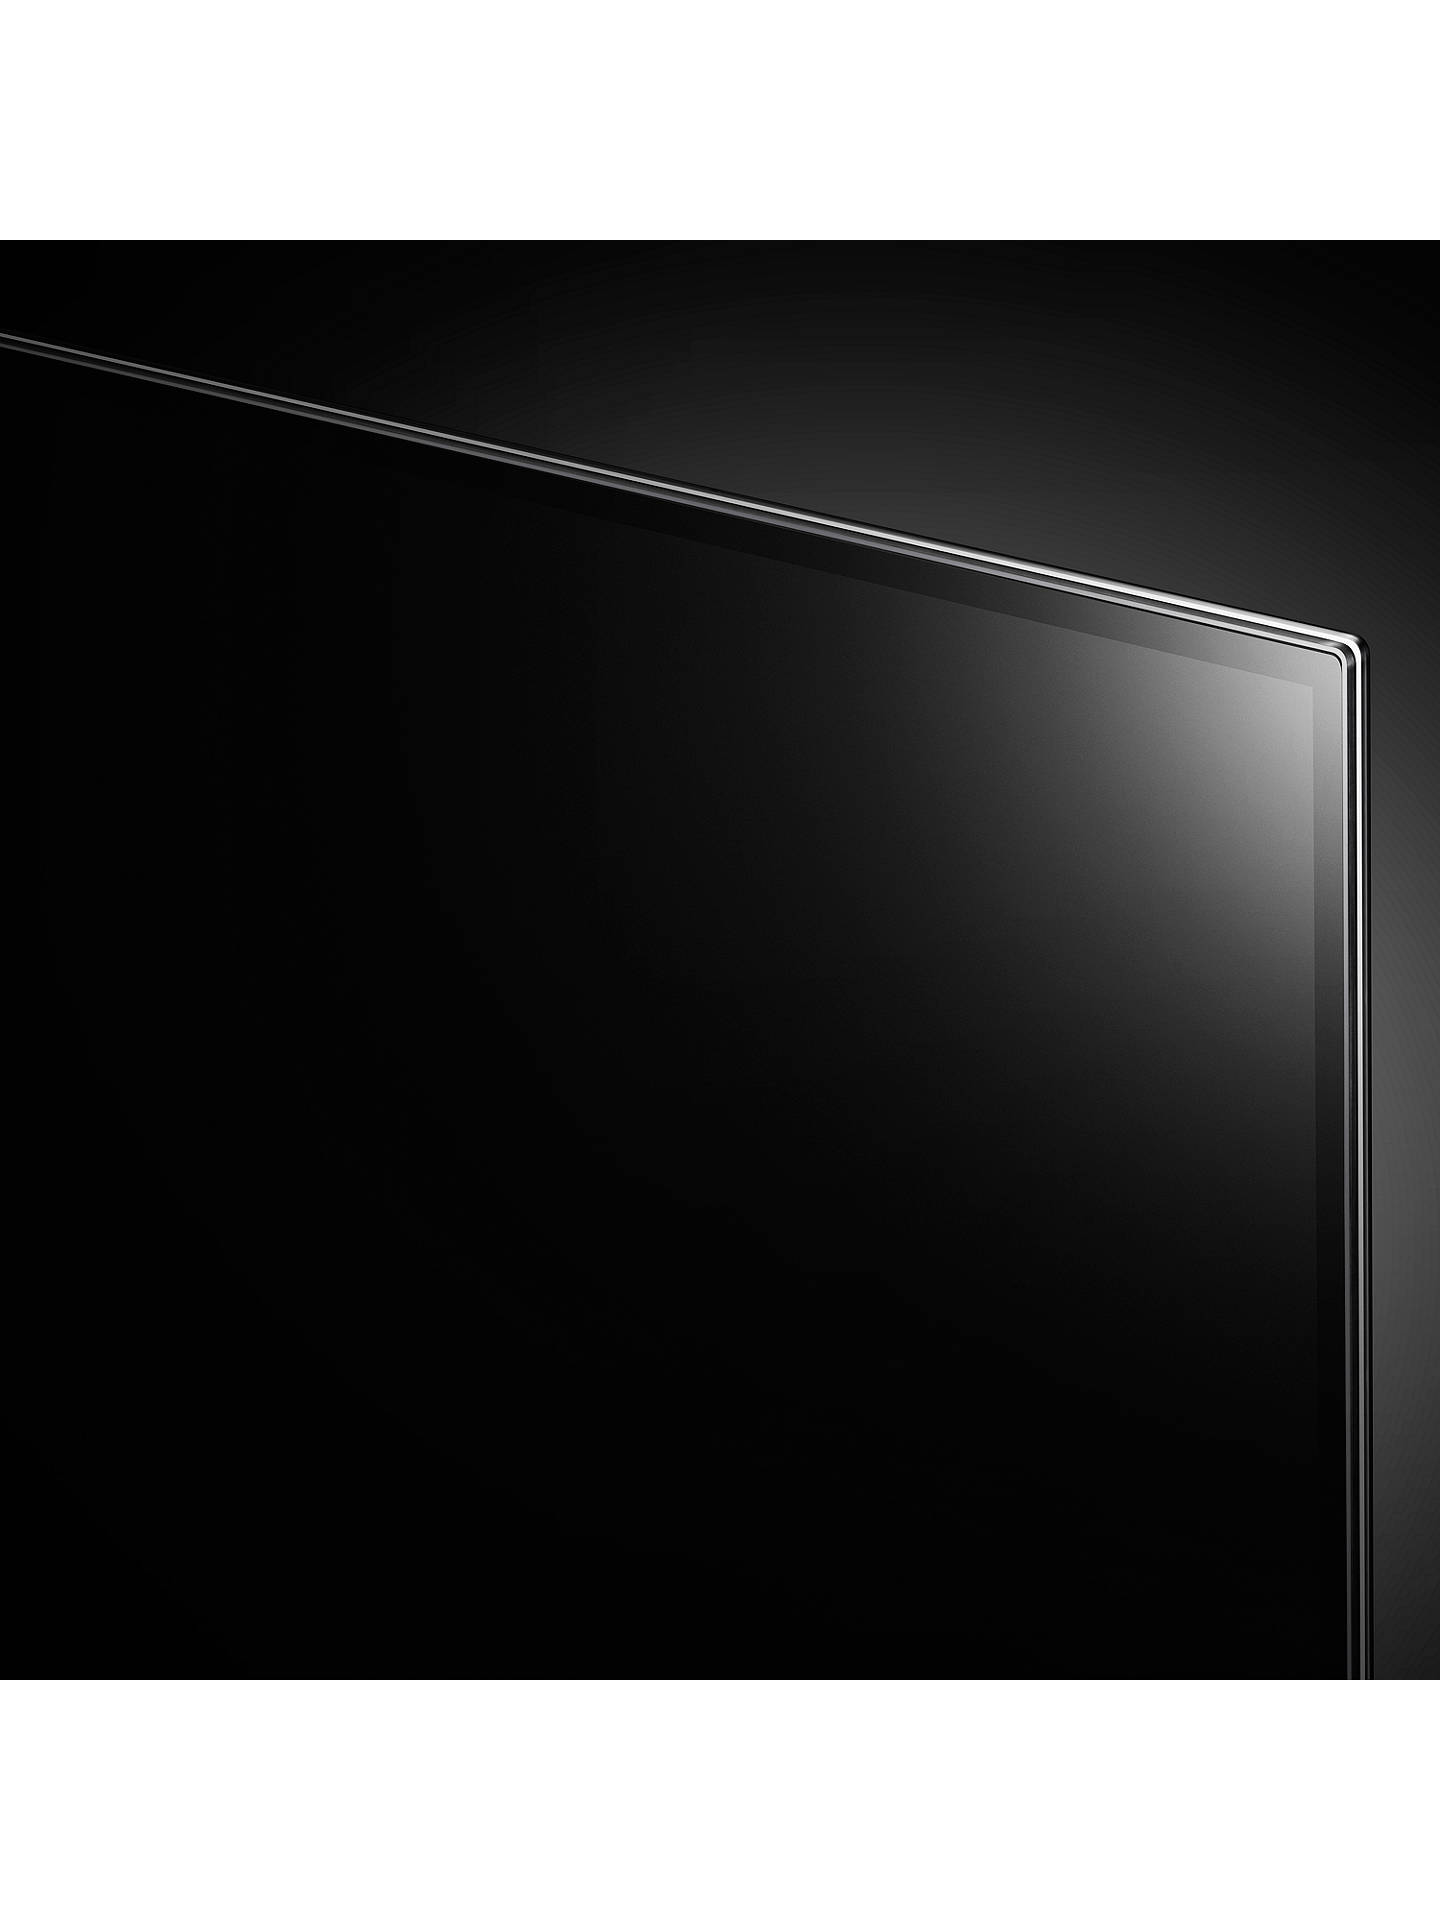 "BuyLG OLED65G8PLA Signature OLED HDR 4K Ultra HD Smart TV, 65"" with Freeview Play/Freesat HD, One-Glass Design & Dolby Atmos Sound Base Unit, Ultra HD Certified, Black Online at johnlewis.com"